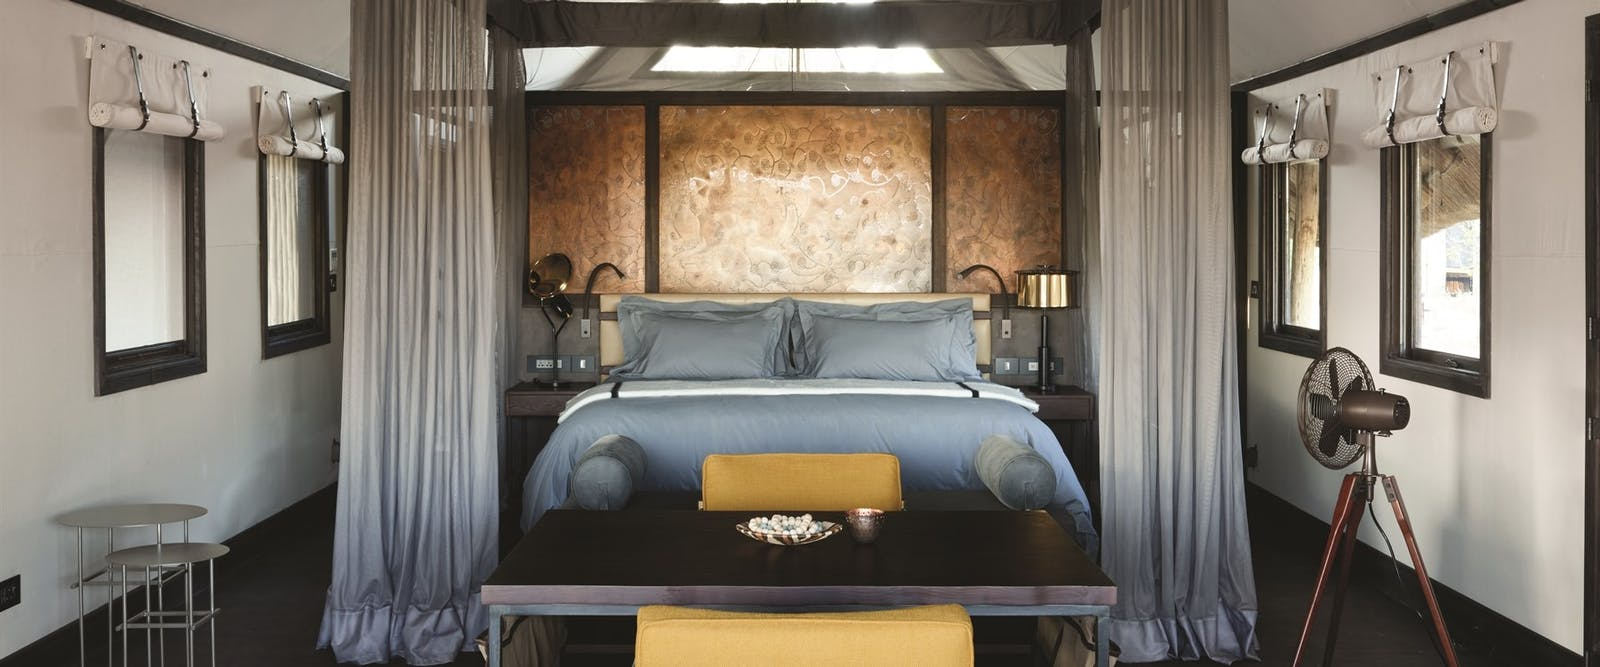 Bedroom Interior at Eagle Island Lodge, A Belmond Safari, Botswana